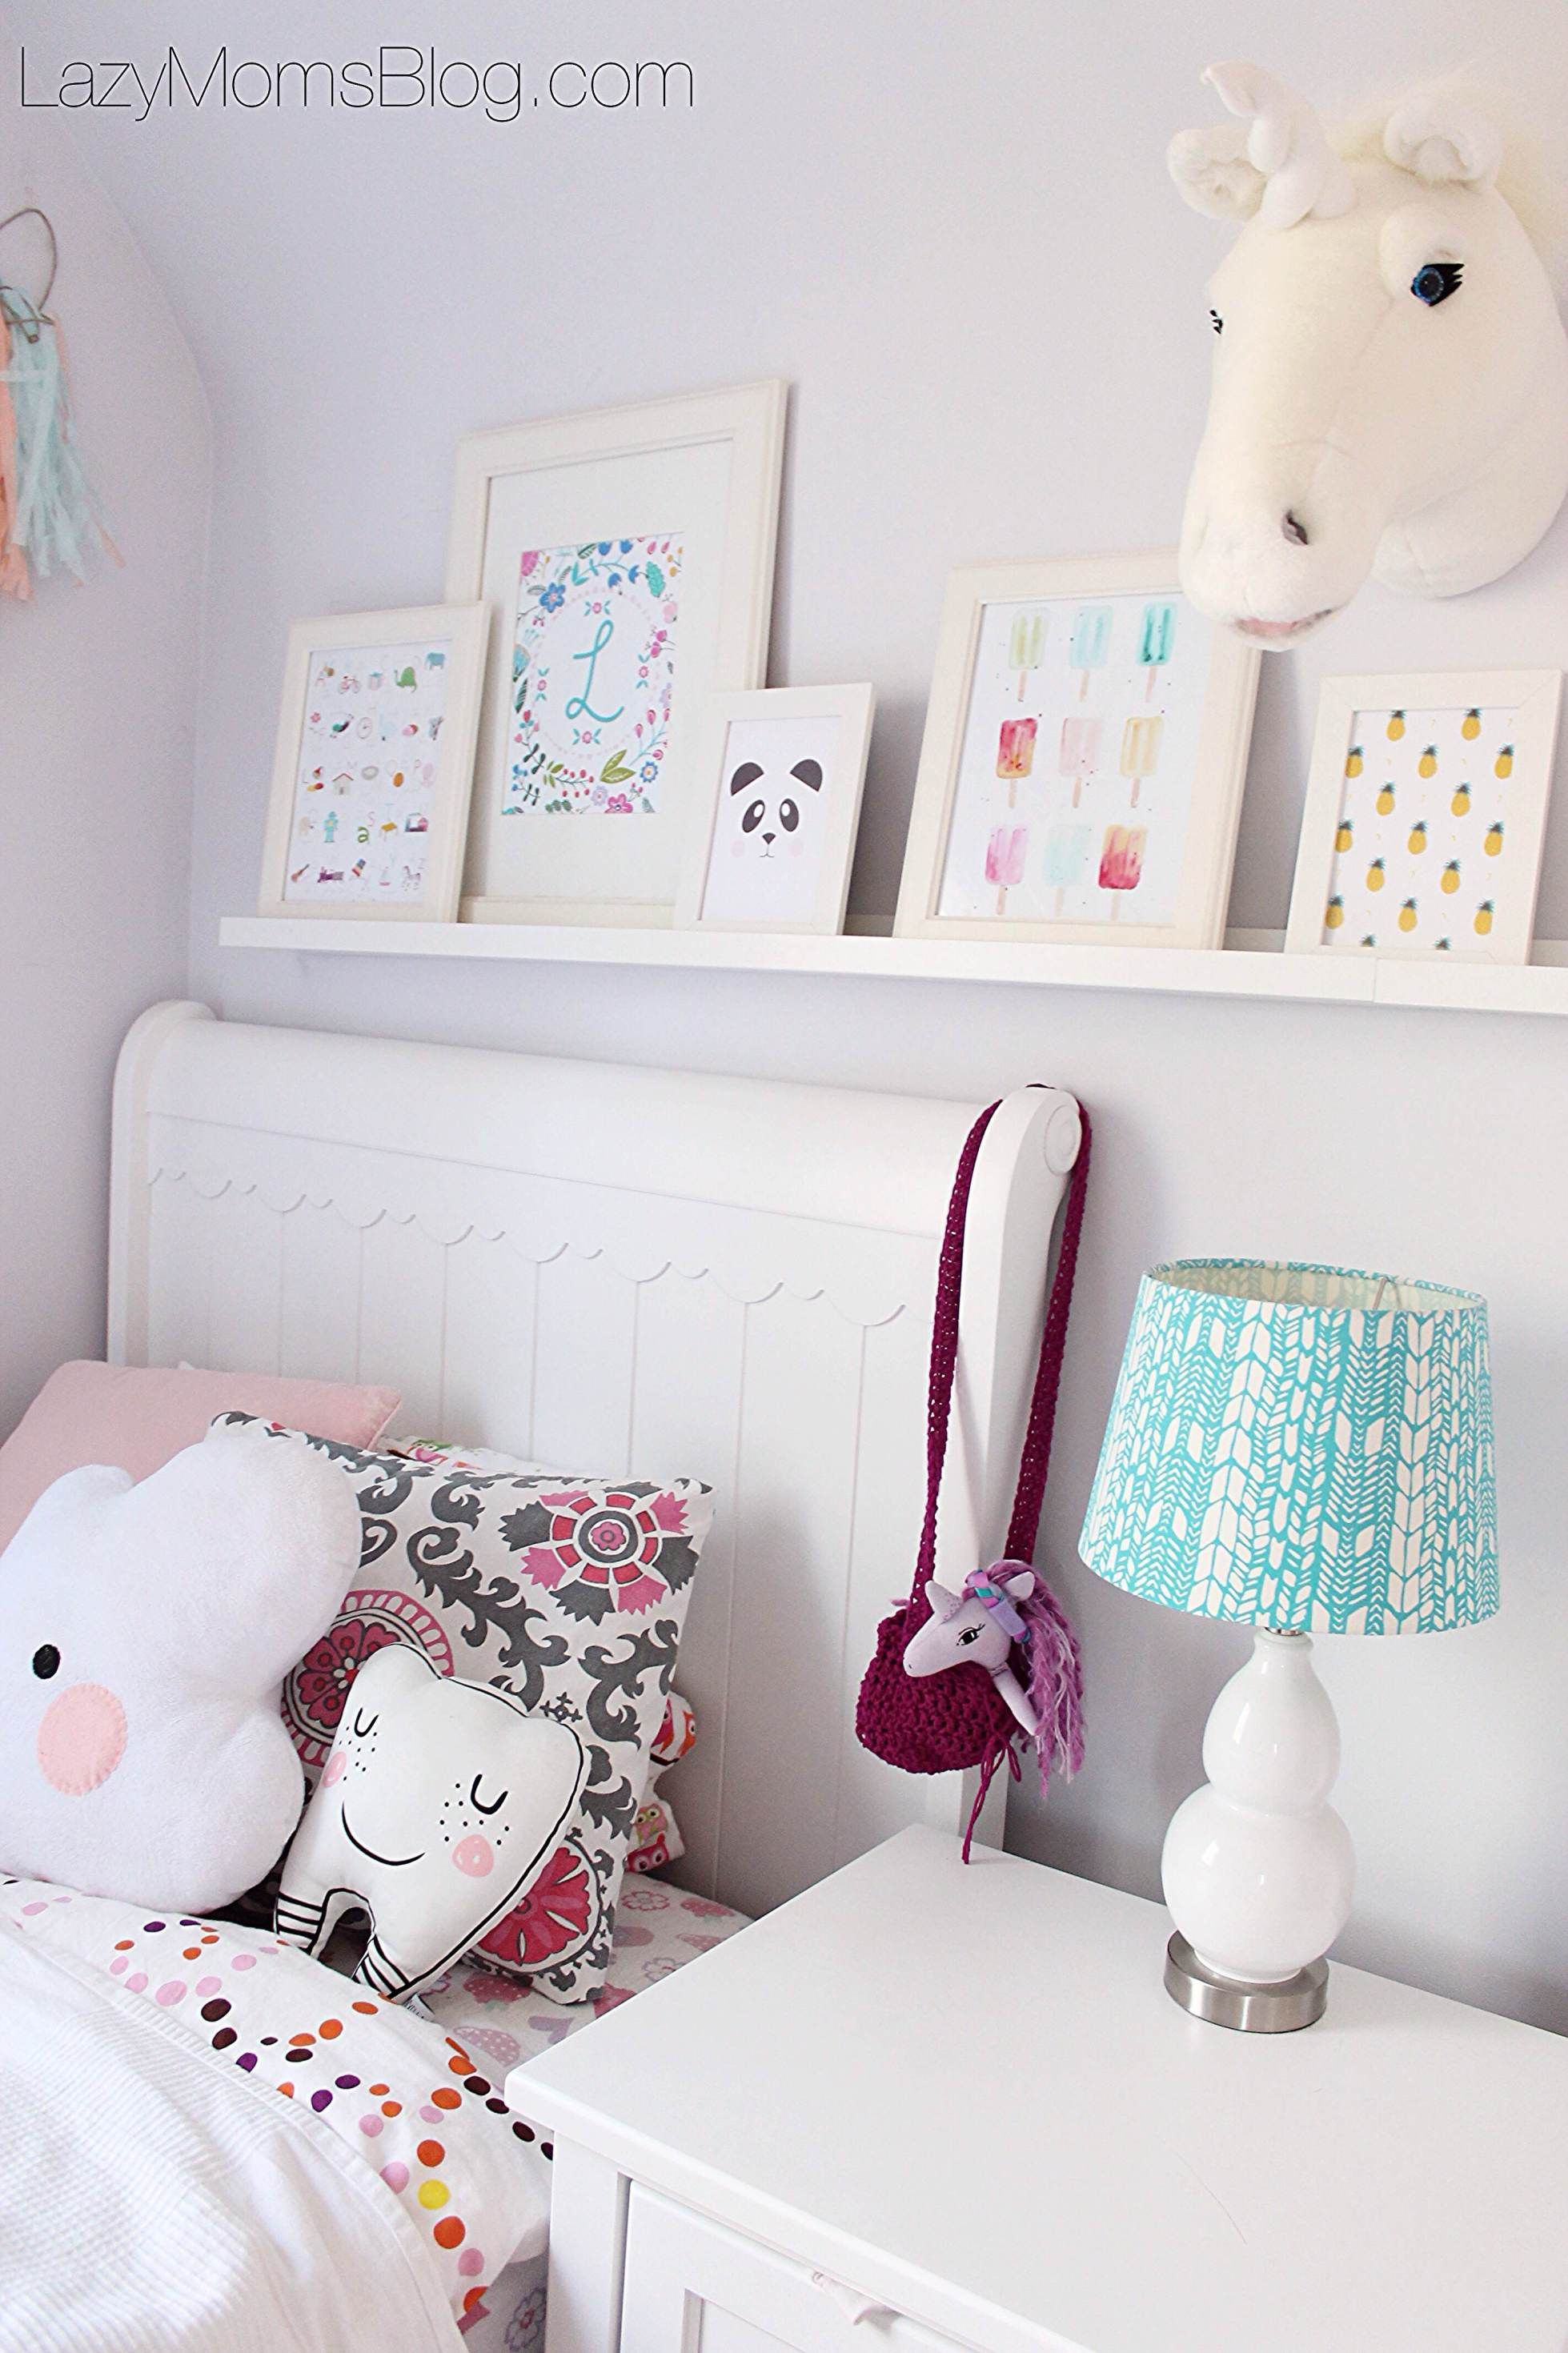 How to organize kid's shared bedroom (With images) Small